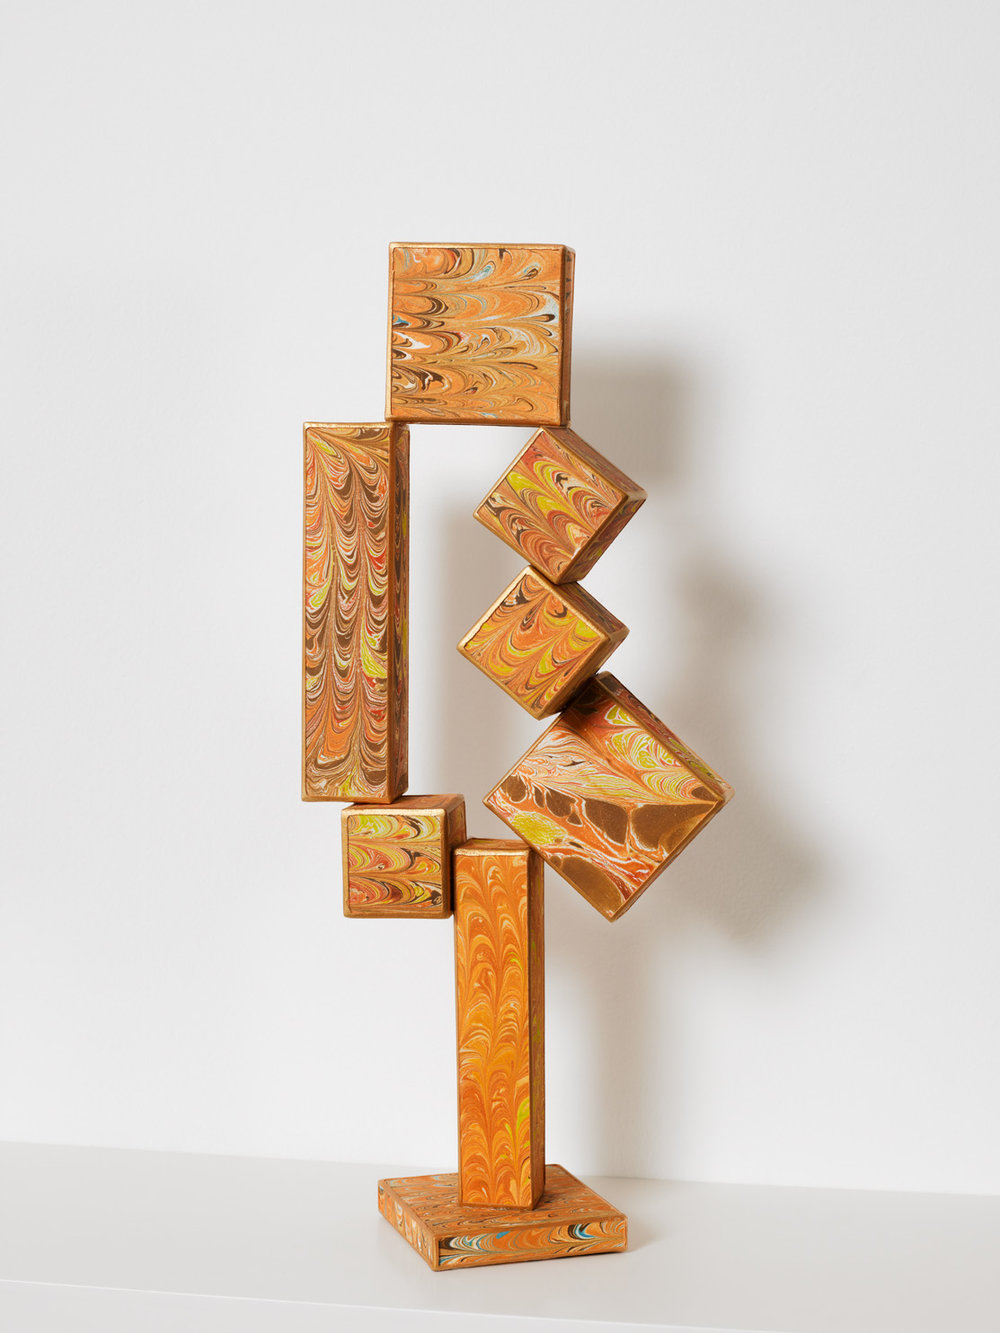 No side to fall in (Cubi XII) , 2012, paper, acrylic, wooden armature  18.5 x 7 x 3 inches